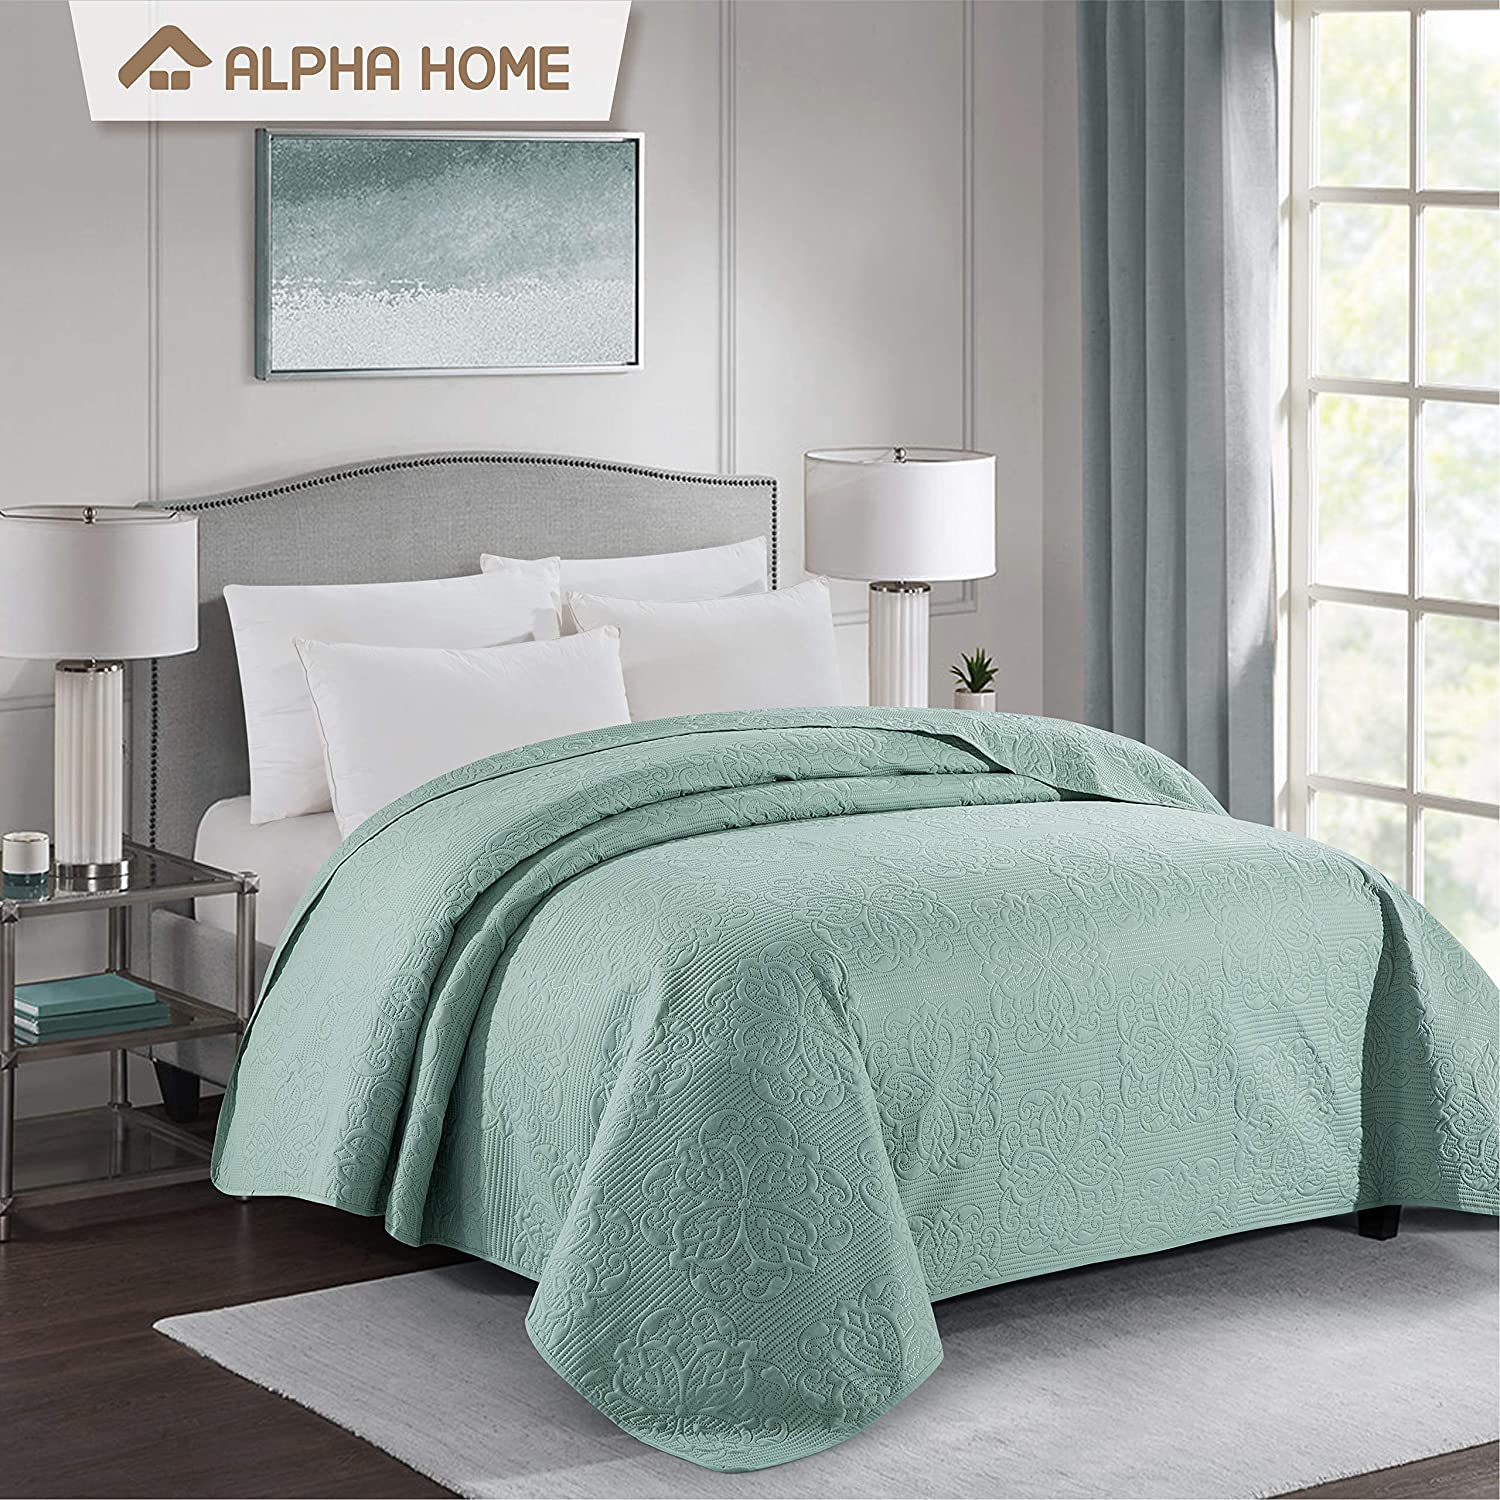 Free Amazon Promo Code 2020 for Bed Quilt